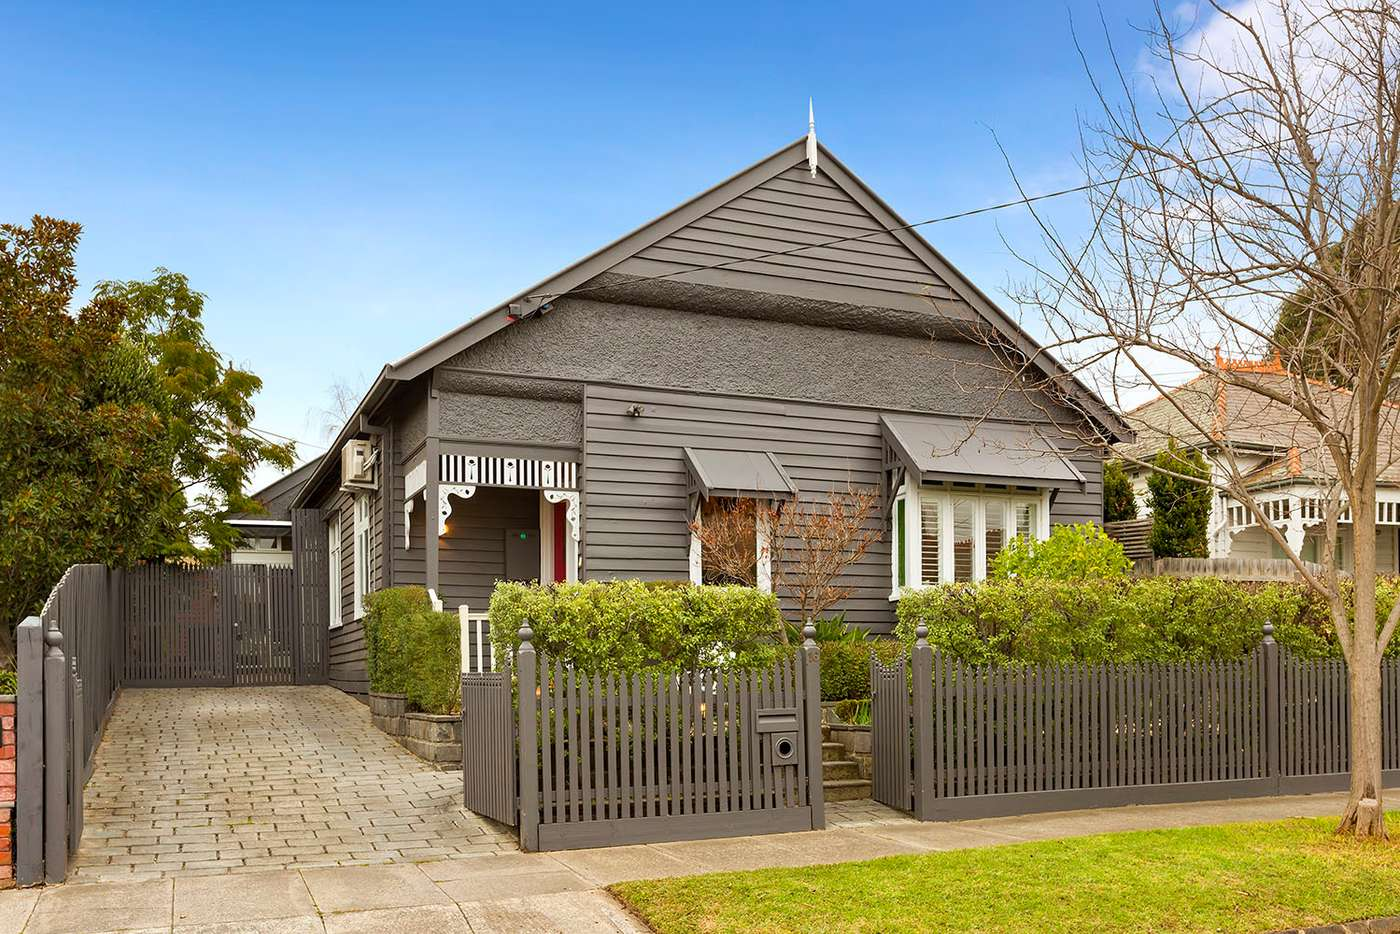 Main view of Homely house listing, 16 Allison Road, Elsternwick VIC 3185